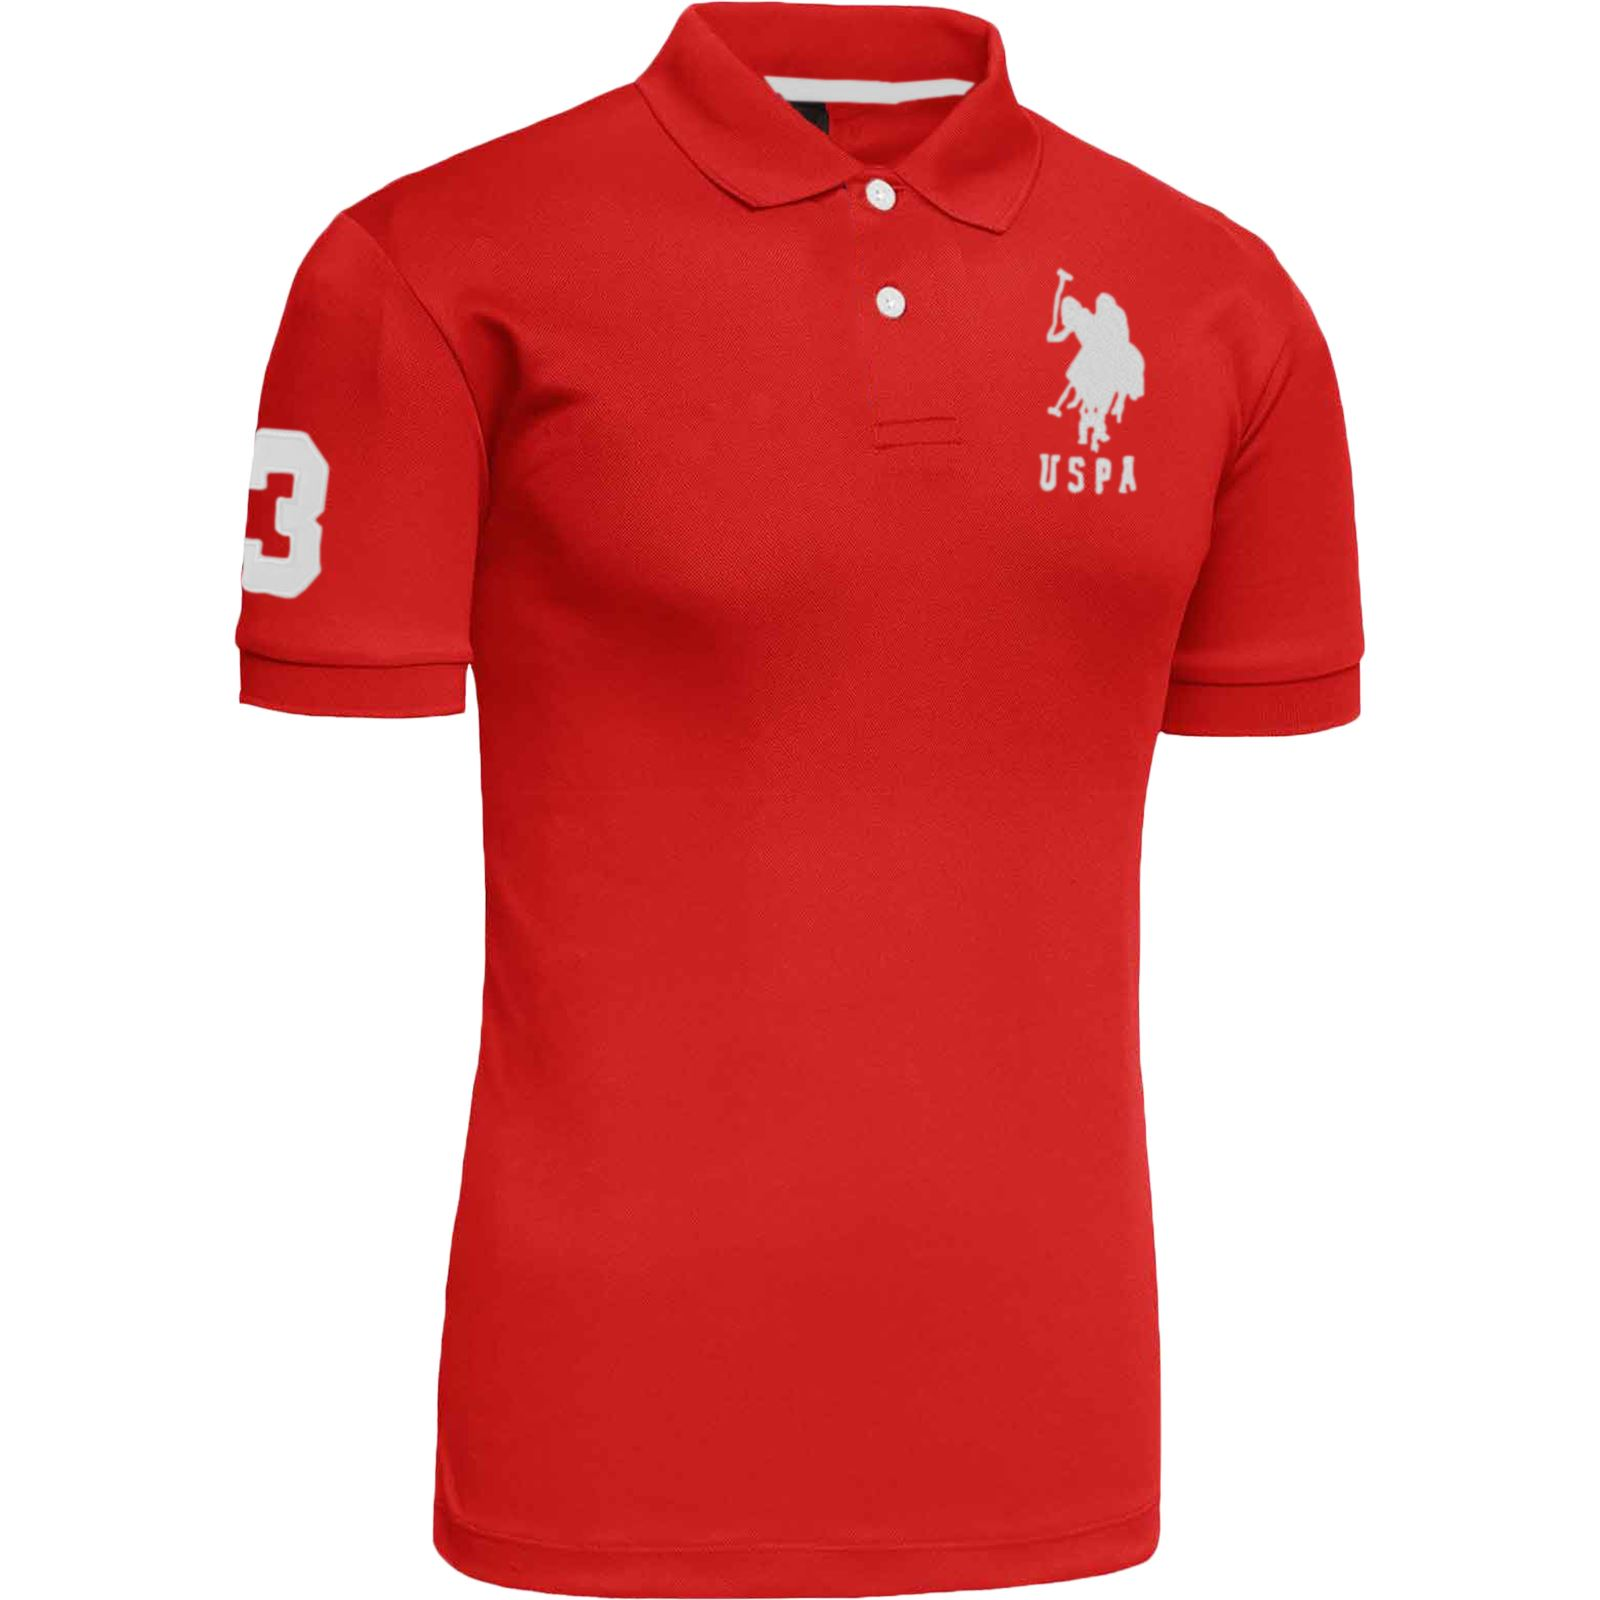 mens us polo assn pique t shirt original shirt branded top ForBranded Polo T Shirts